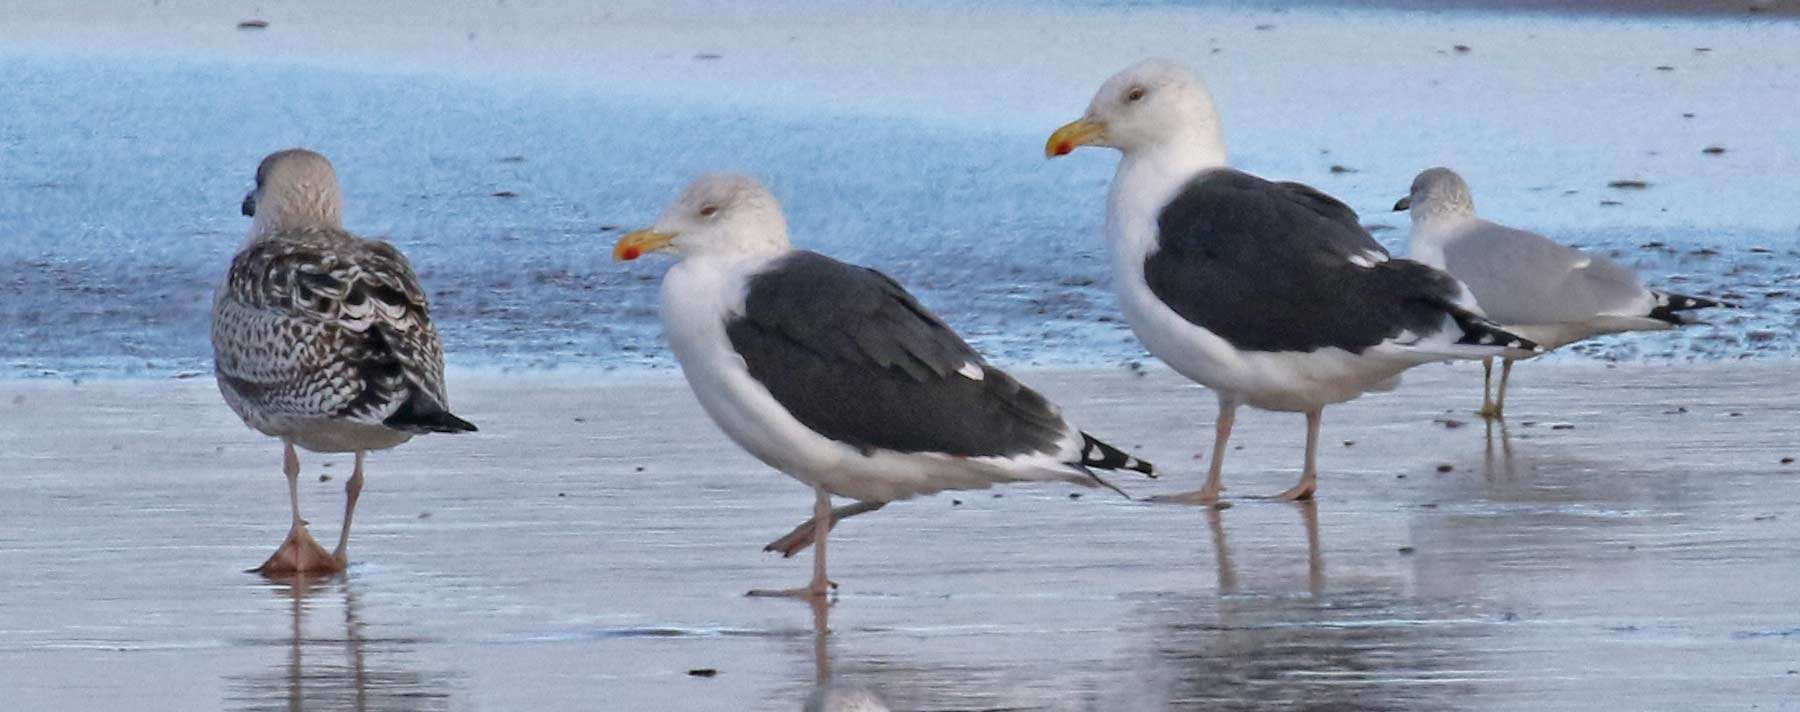 Great Black-backed Gull Photo 1